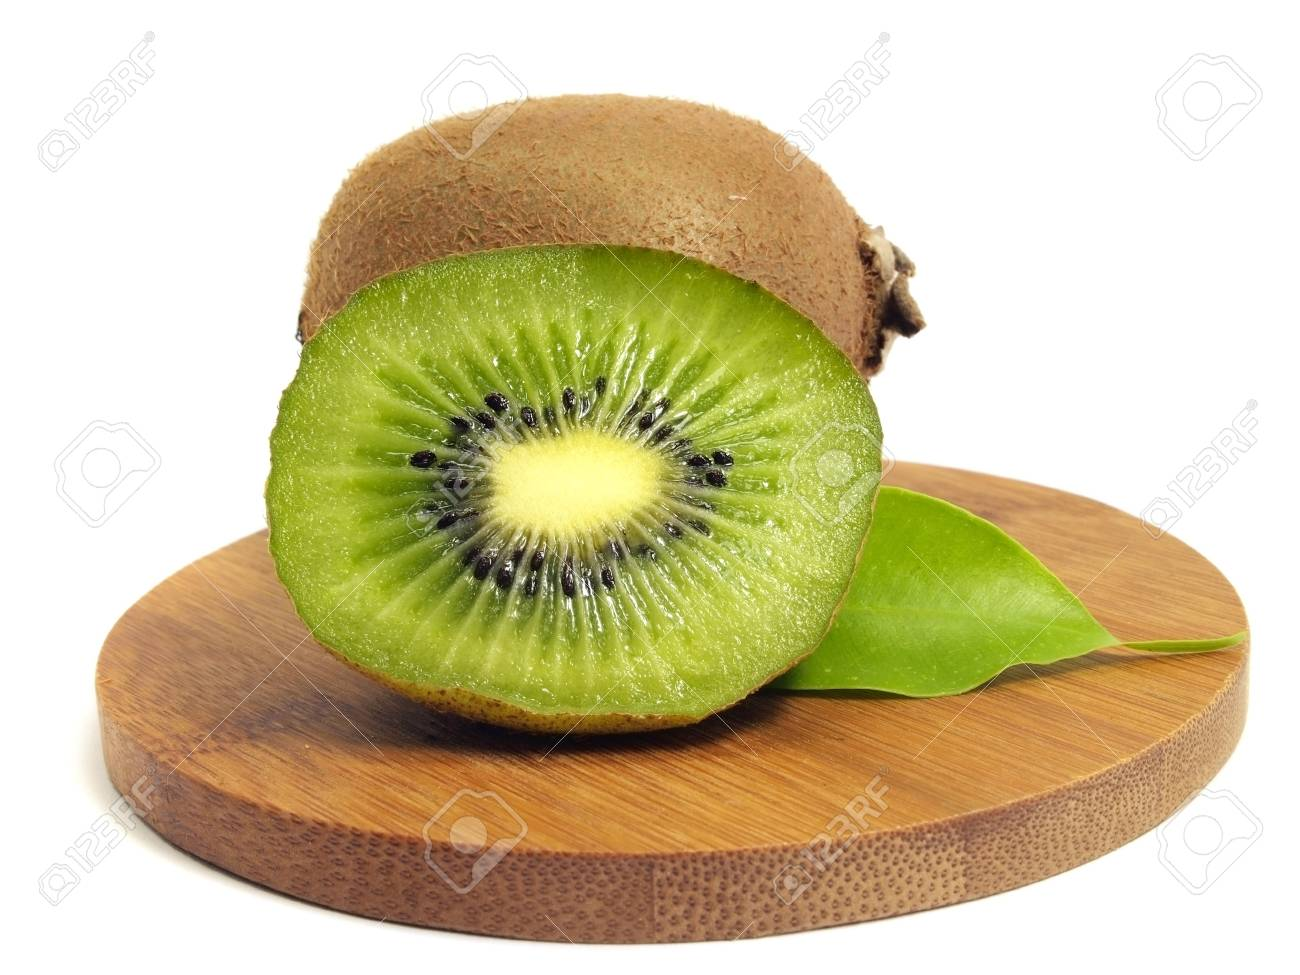 kiwi fruit wiht leaves on bamboo board on a white background Stock Photo - 12998645